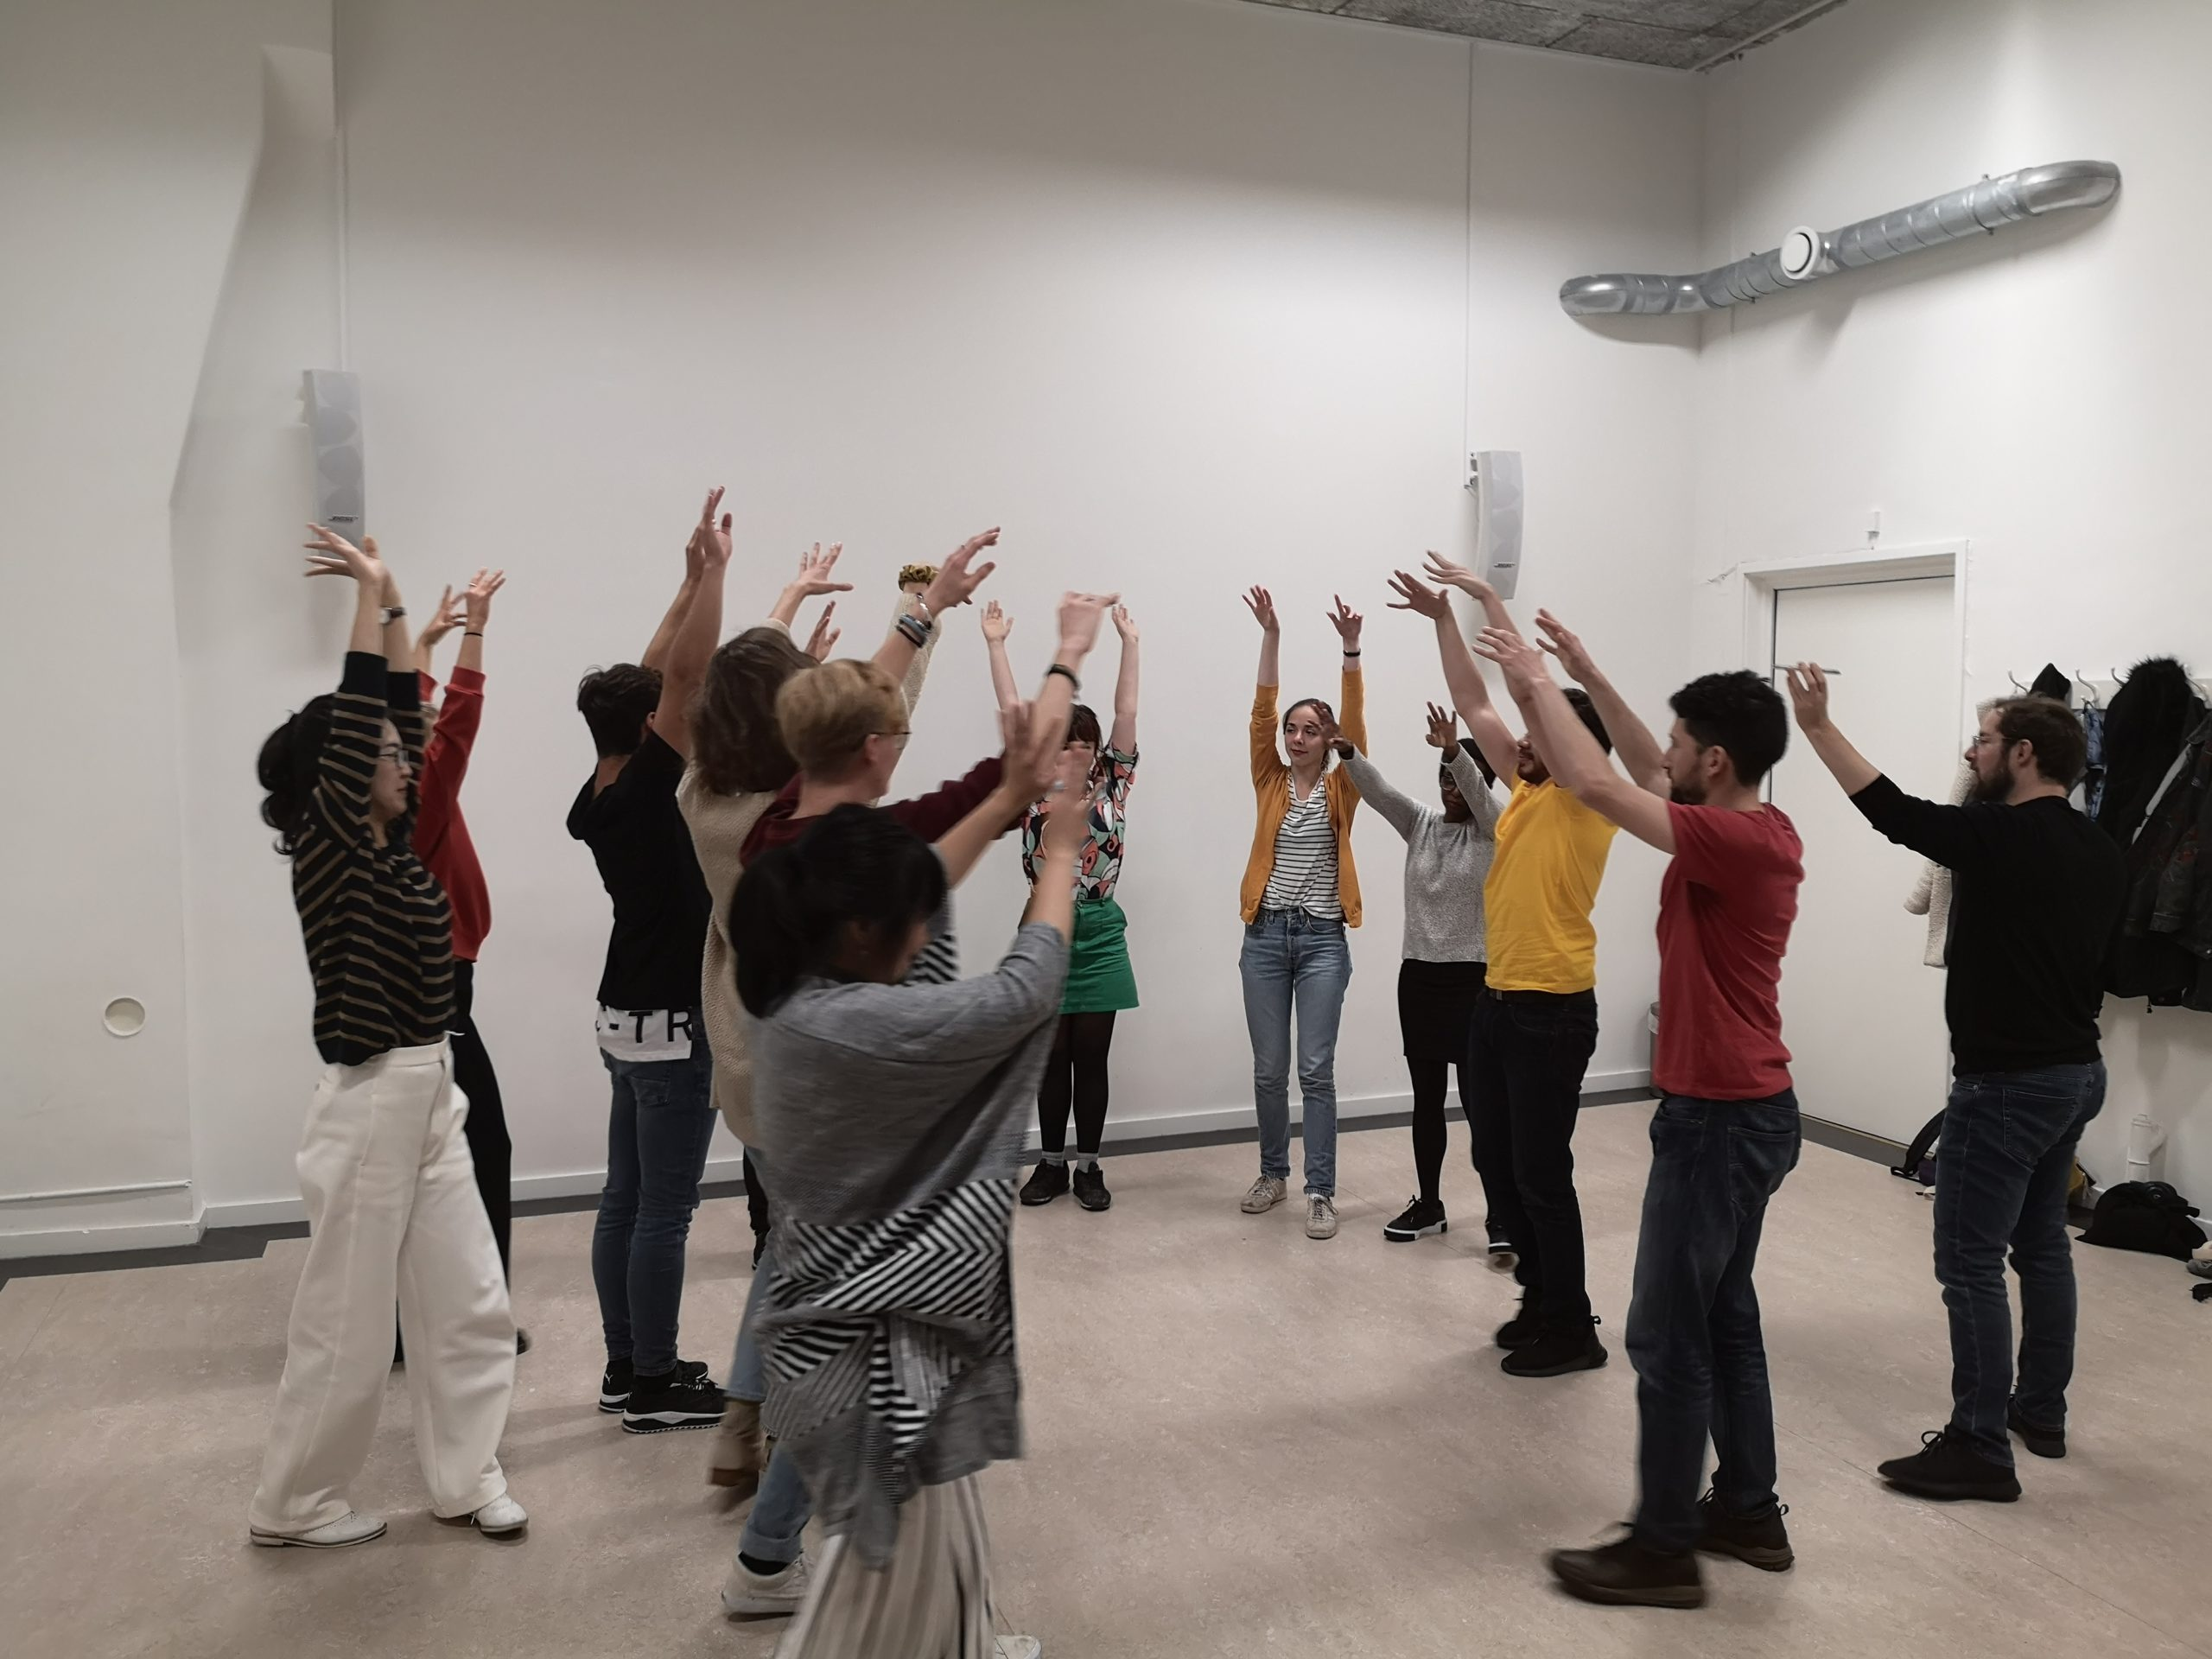 Pure improv for beginners. A group of people form a semi-circle holding their hands up in the air.